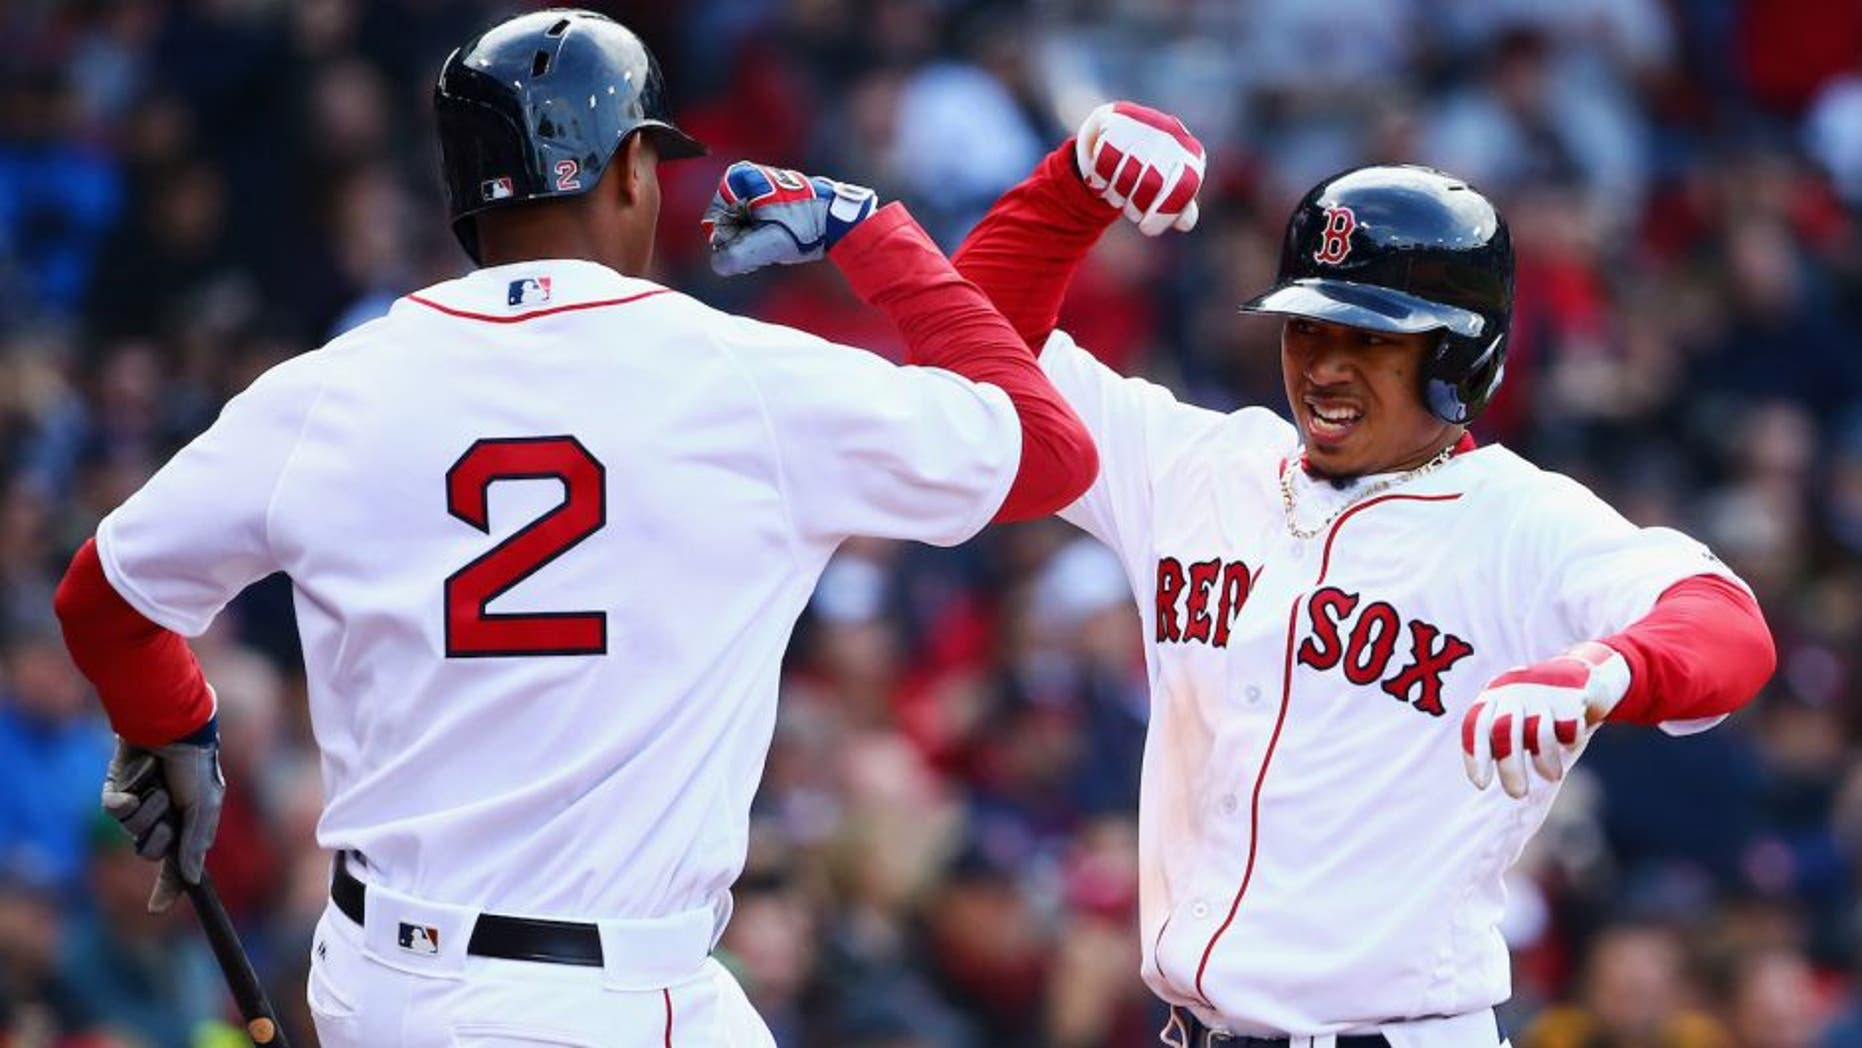 BOSTON, MASSACHUSETTS - APRIL 11: Mookie Betts #50 of the Boston Red Sox celebrates with Xander Bogaerts #2 of the Boston Red Sox after hitting a home run during the ninth inning of the Red Sox home opener at Fenway Park on April 11, 2016 in Boston, Massachusetts. The Orioles defeat the Red Sox 9-7. (Photo by Maddie Meyer/Getty Images)